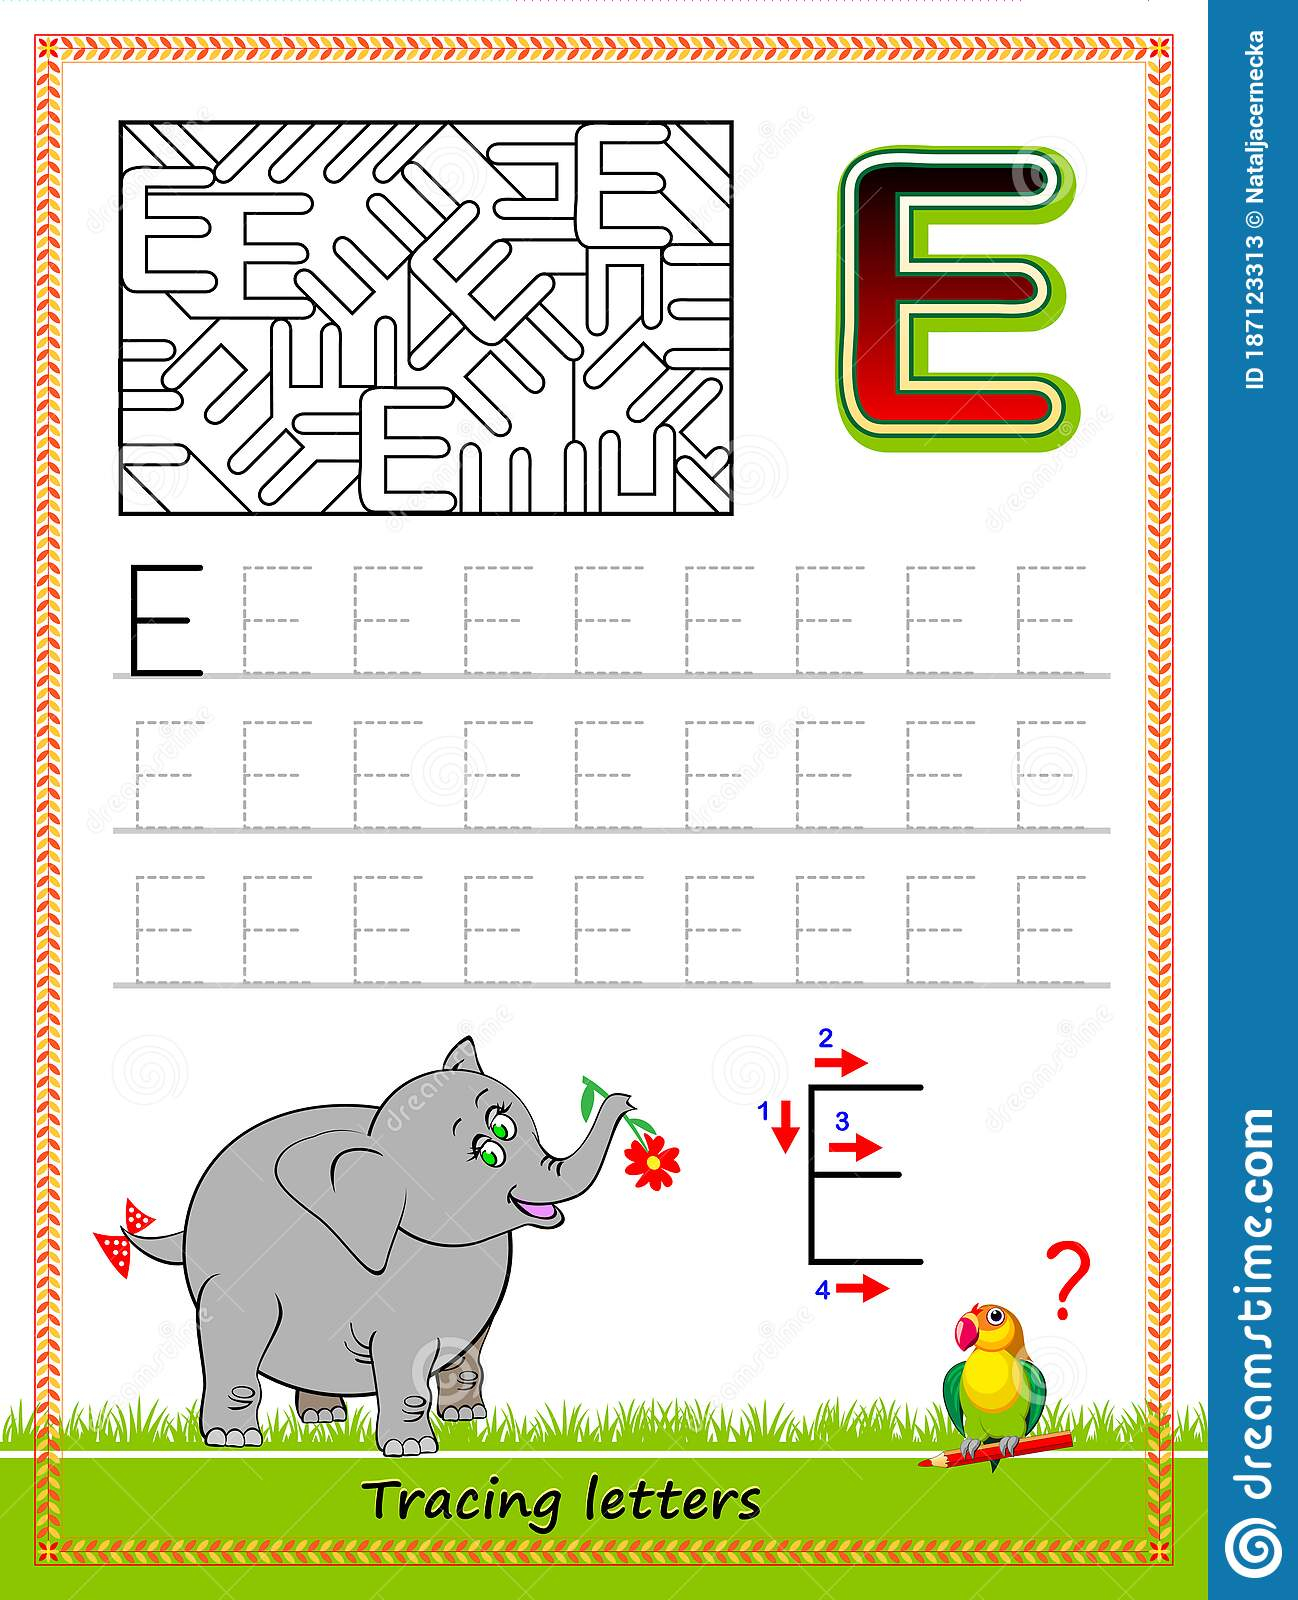 Worksheet For Tracing Letters. Find And Paint All Letters E